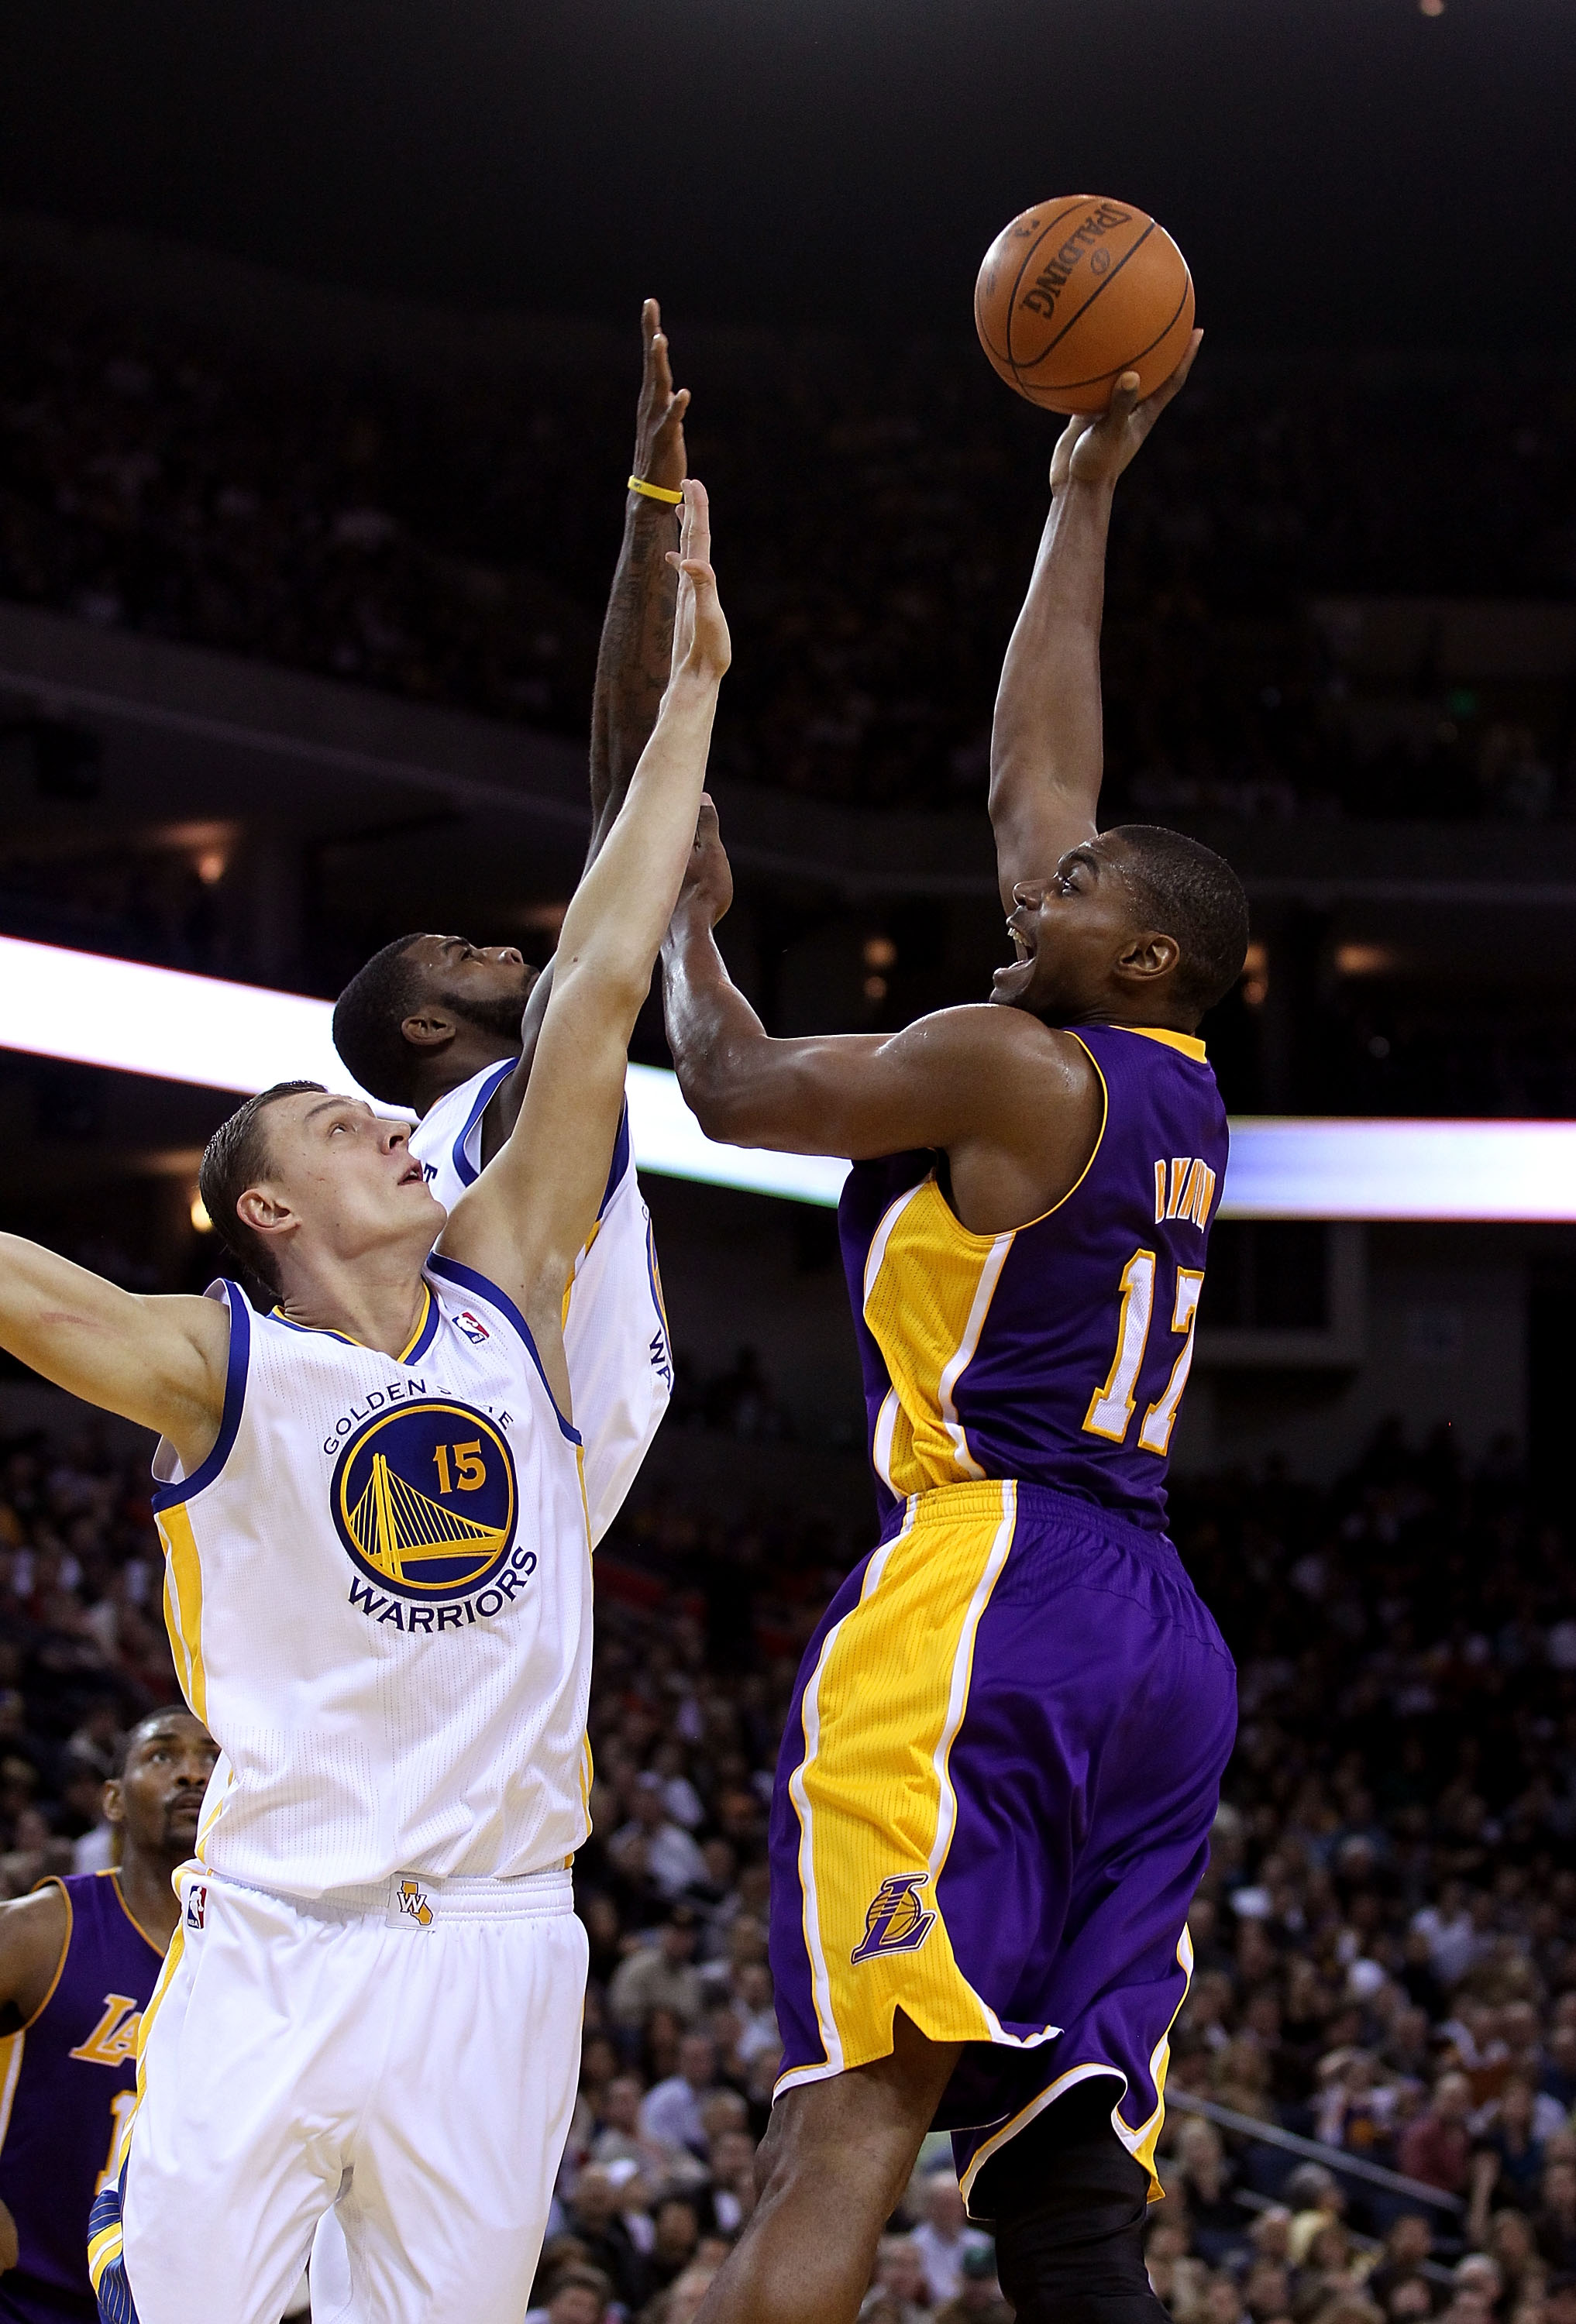 OAKLAND, CA - JANUARY 12: Andrew Bynum #17 of the Los Angeles Lakers shoots over Andris Biedrins #15 of the Golden State Warriors at Oracle Arena on January 12, 2011 in Oakland, California. NOTE TO USER: User expressly acknowledges and agrees that, by dow